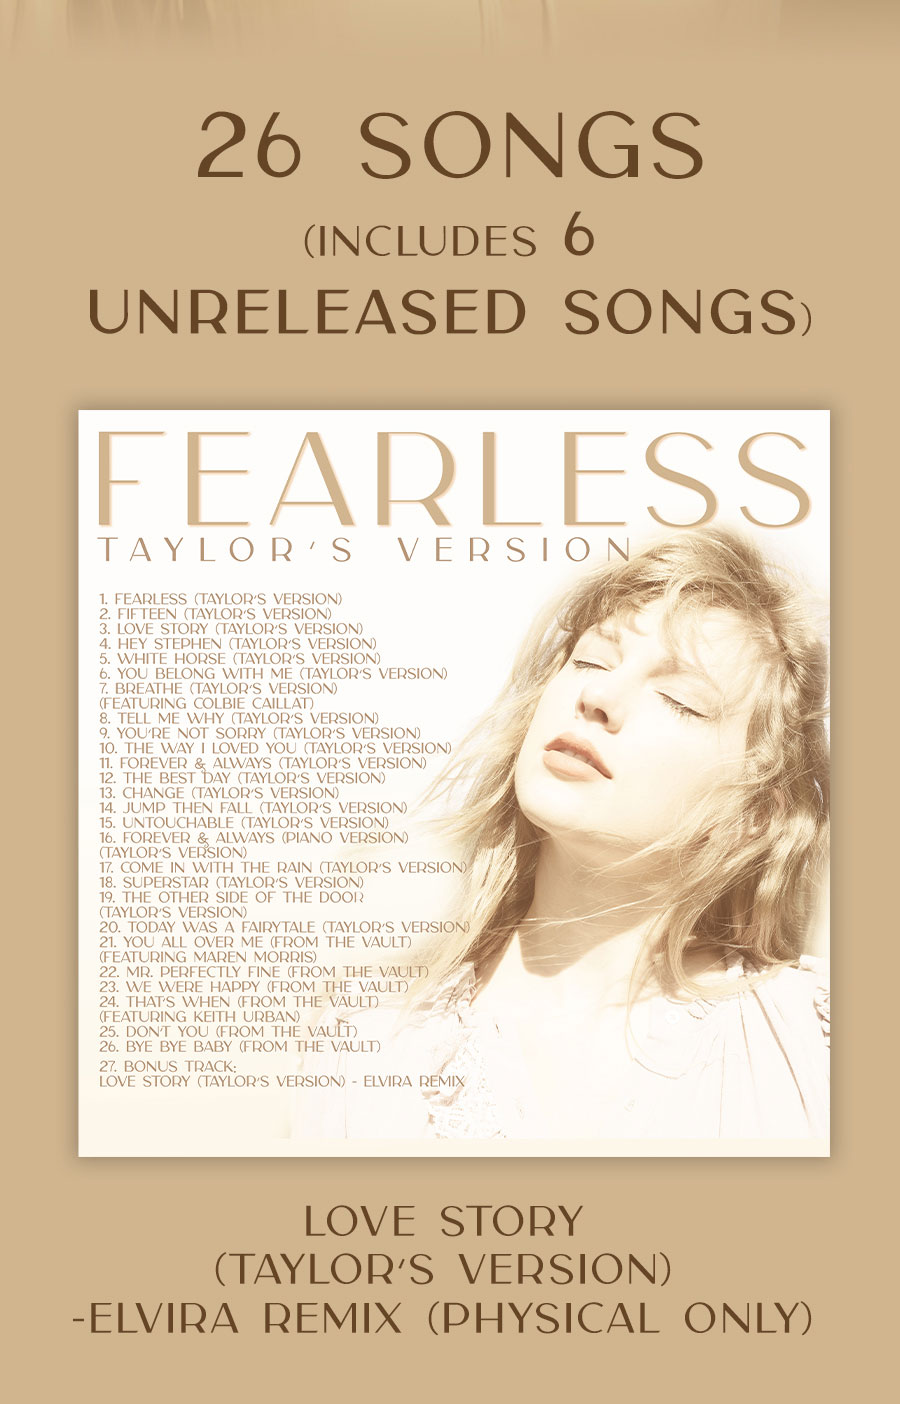 26 songs (includes 6 unreleased songs) Love Story (Taylor's Version) - Elvira Remix (Physical Only)